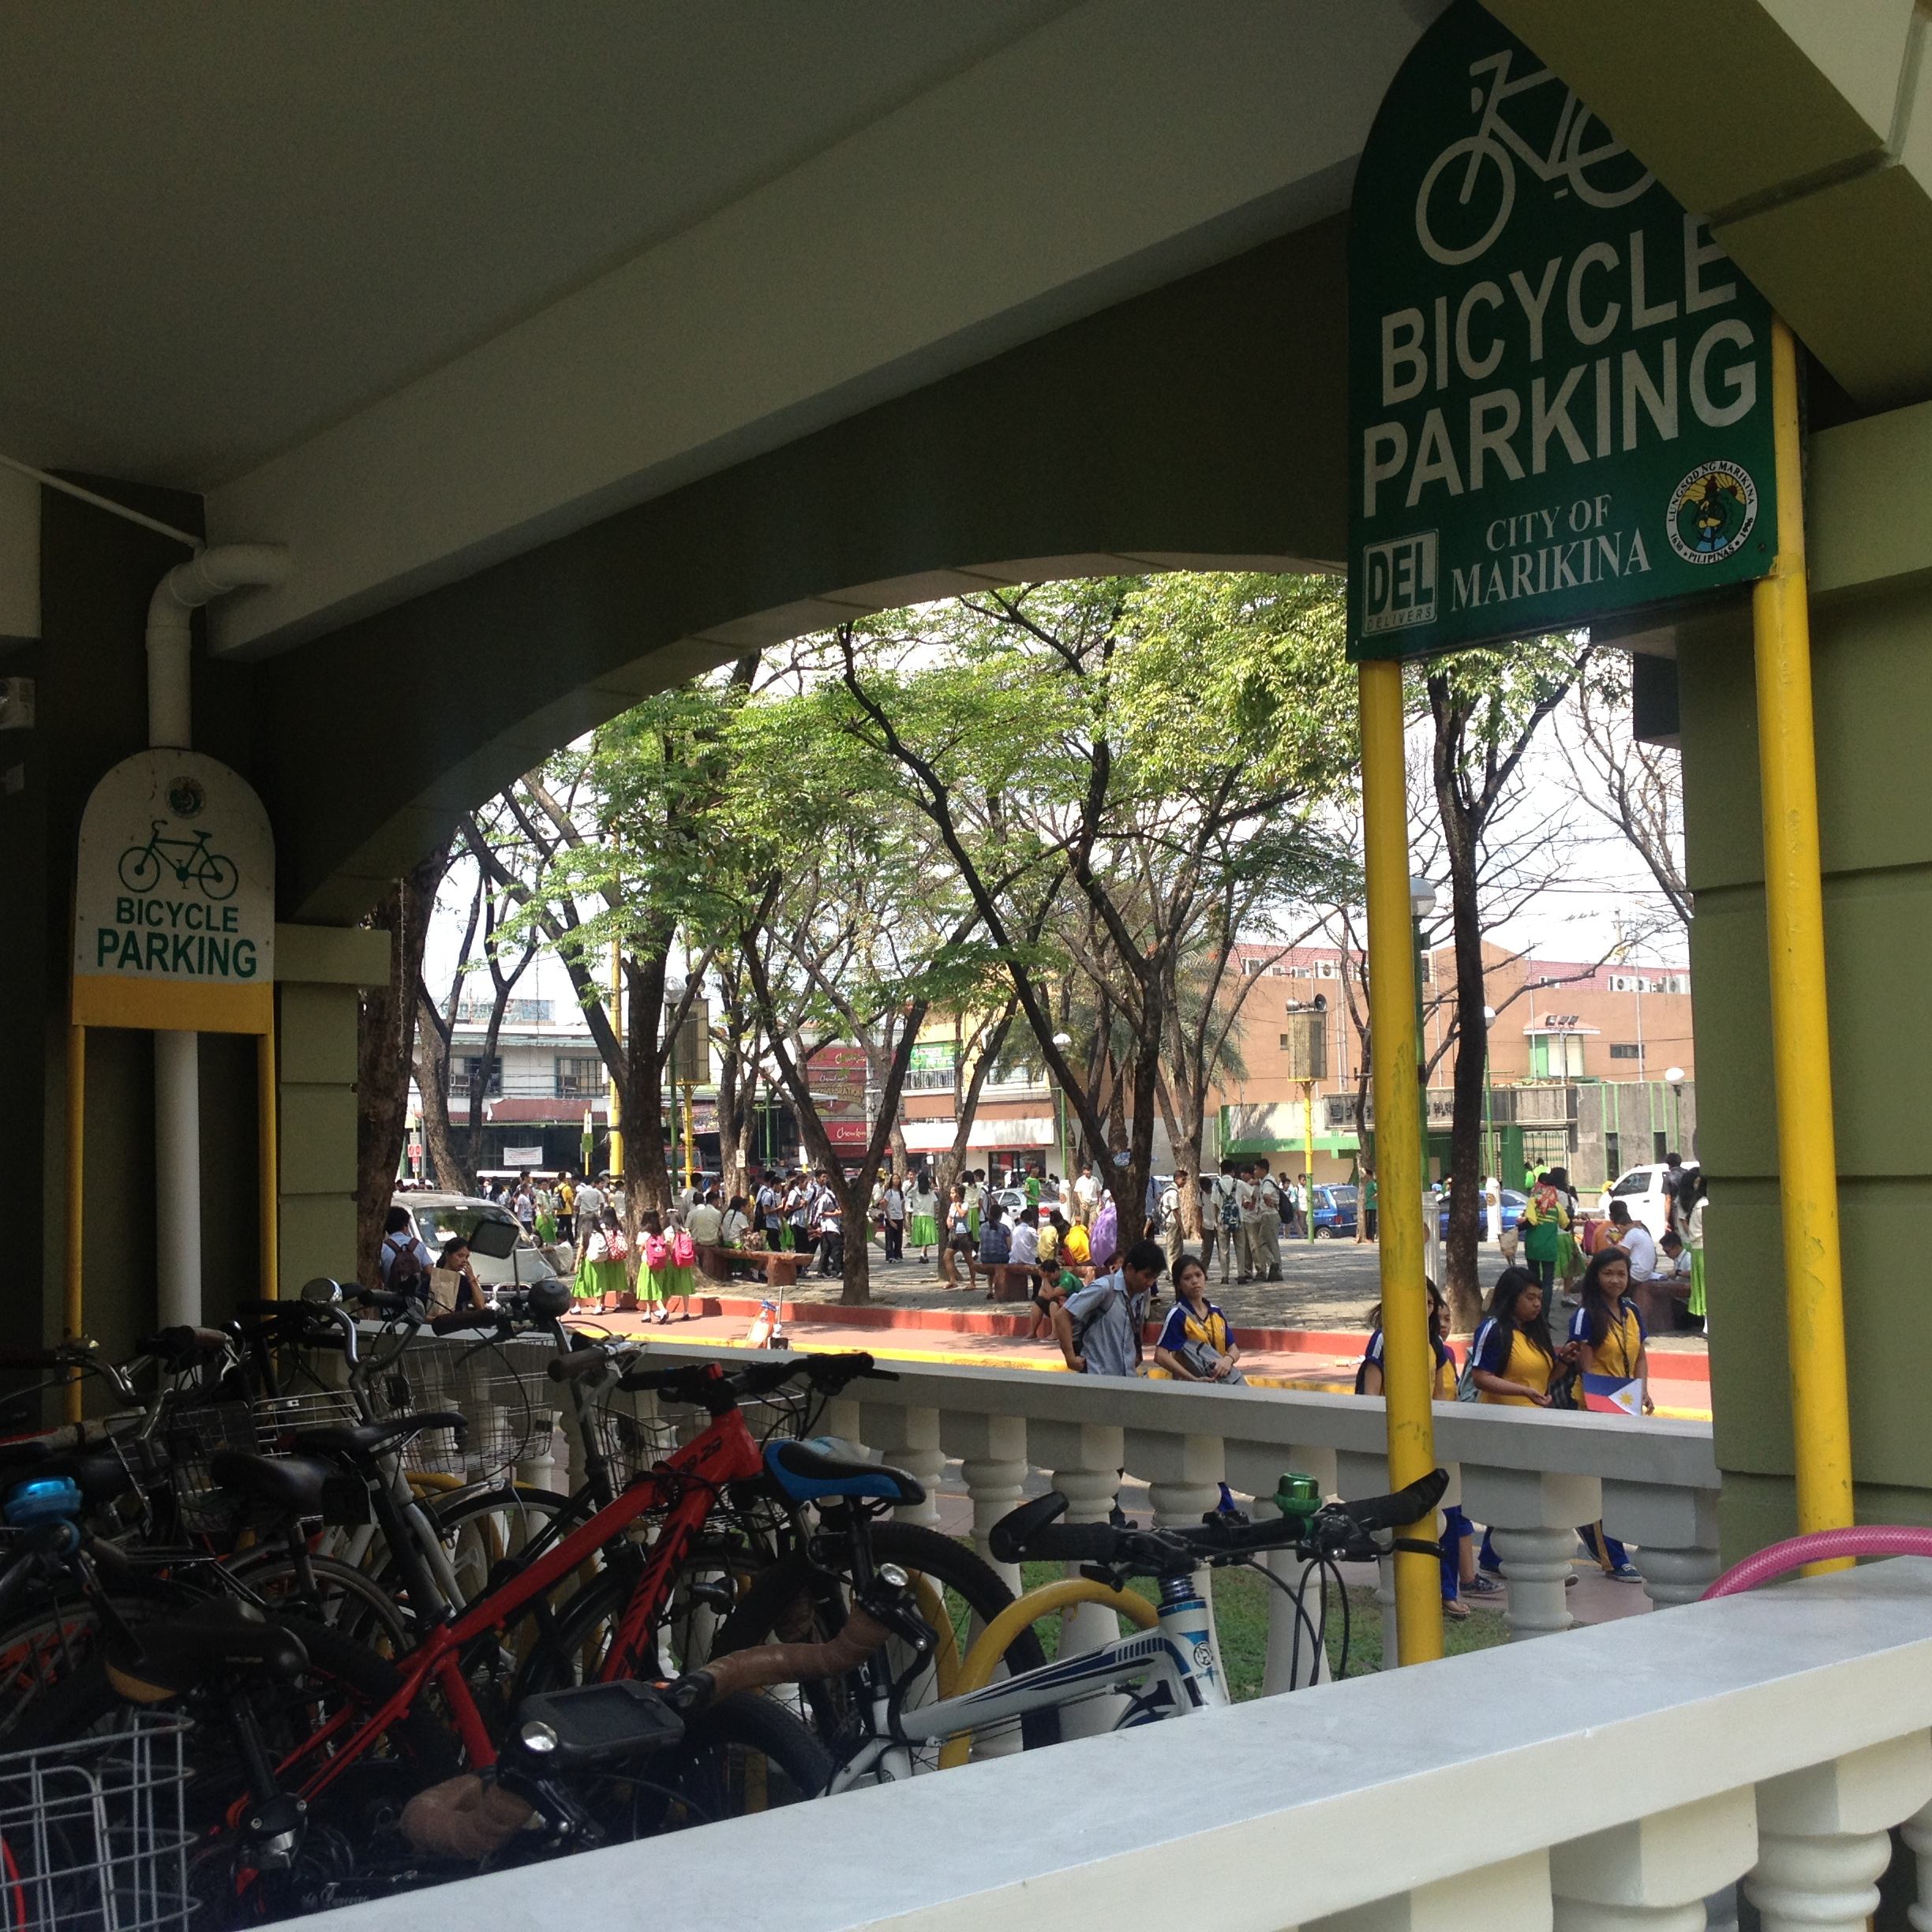 The bike parking at the City Hall. In front of the city hall is a plaza heavily patronized by the local student population from surrounding universities. Marikina seems to get the clustering of uses correct encouraging use of its public spaces.